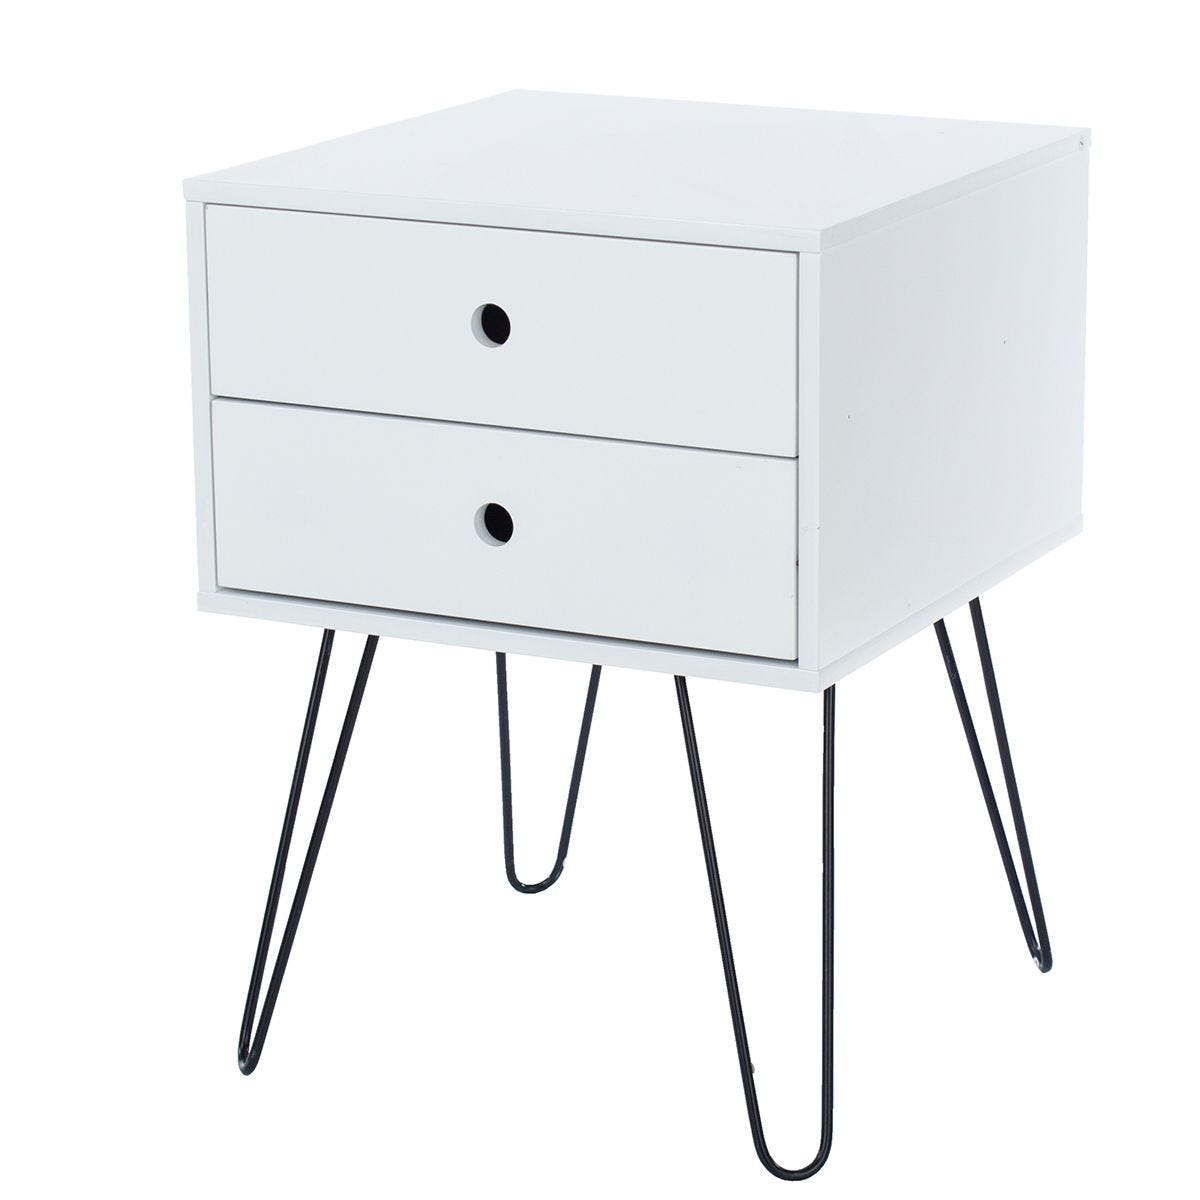 Tulo White and Metal 2 Drawer Bedside